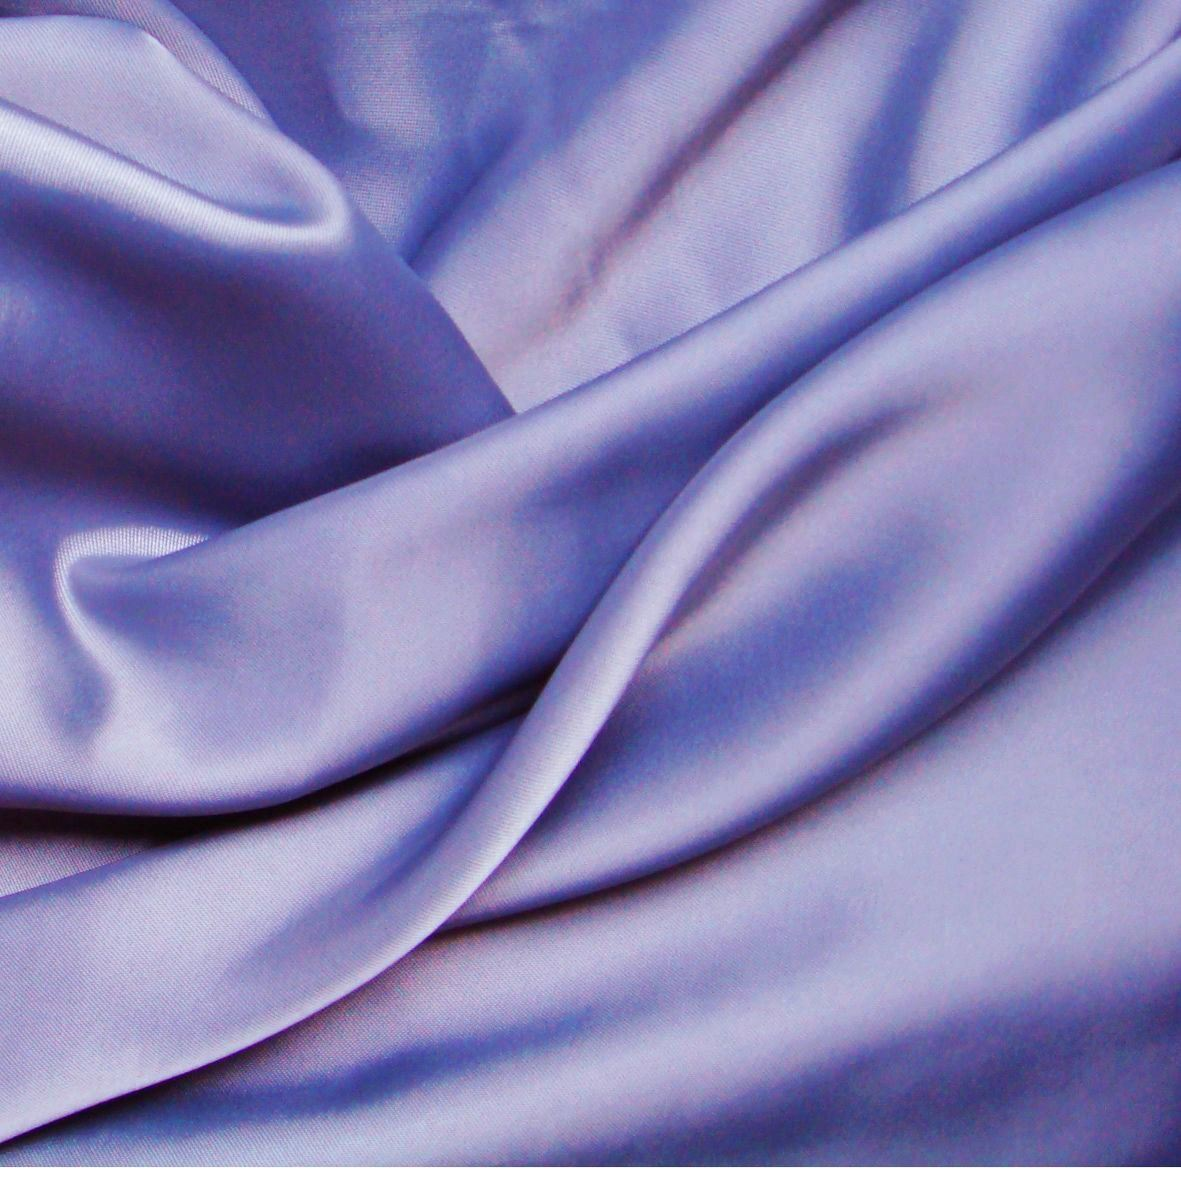 China polyester satin fabric xcwc0042 china satin for Satin fabric